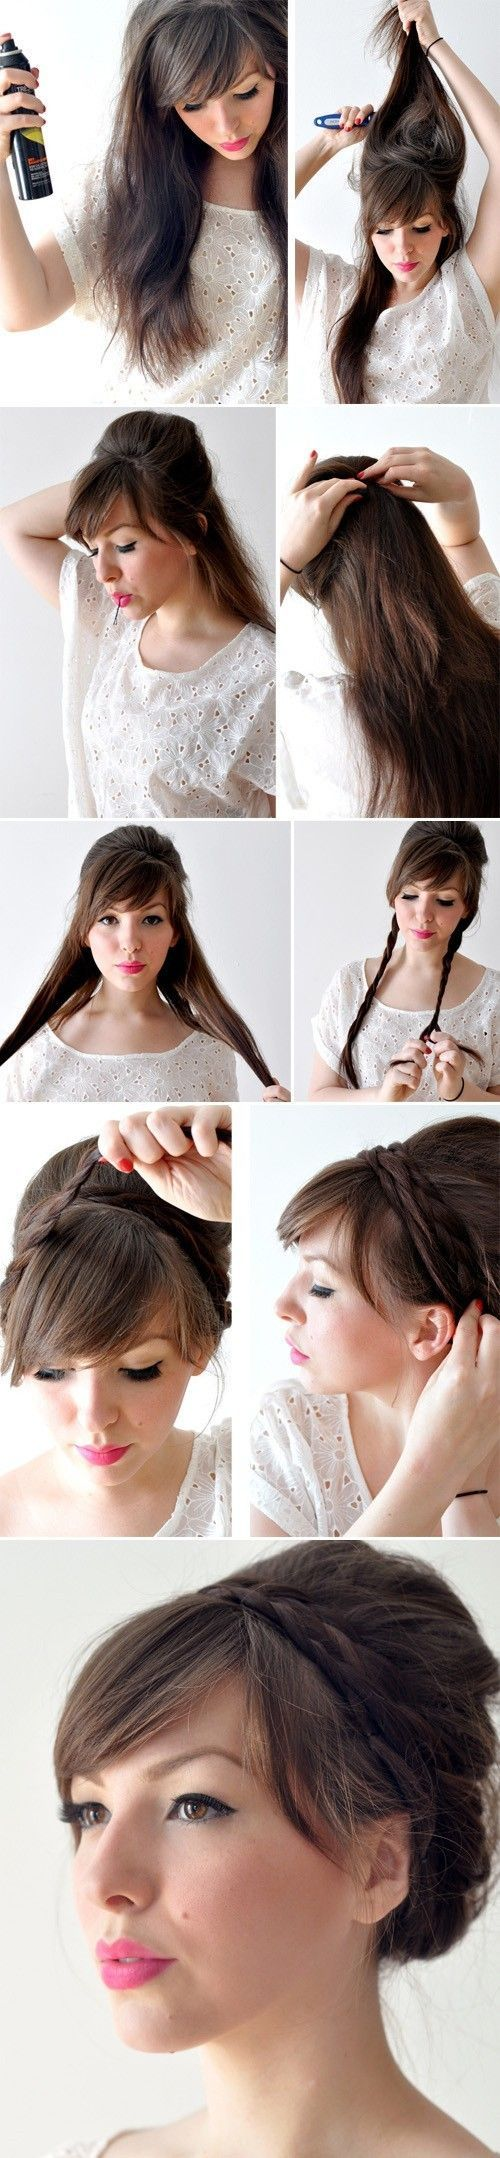 Pretty hair this is really awesome i need to try this one time